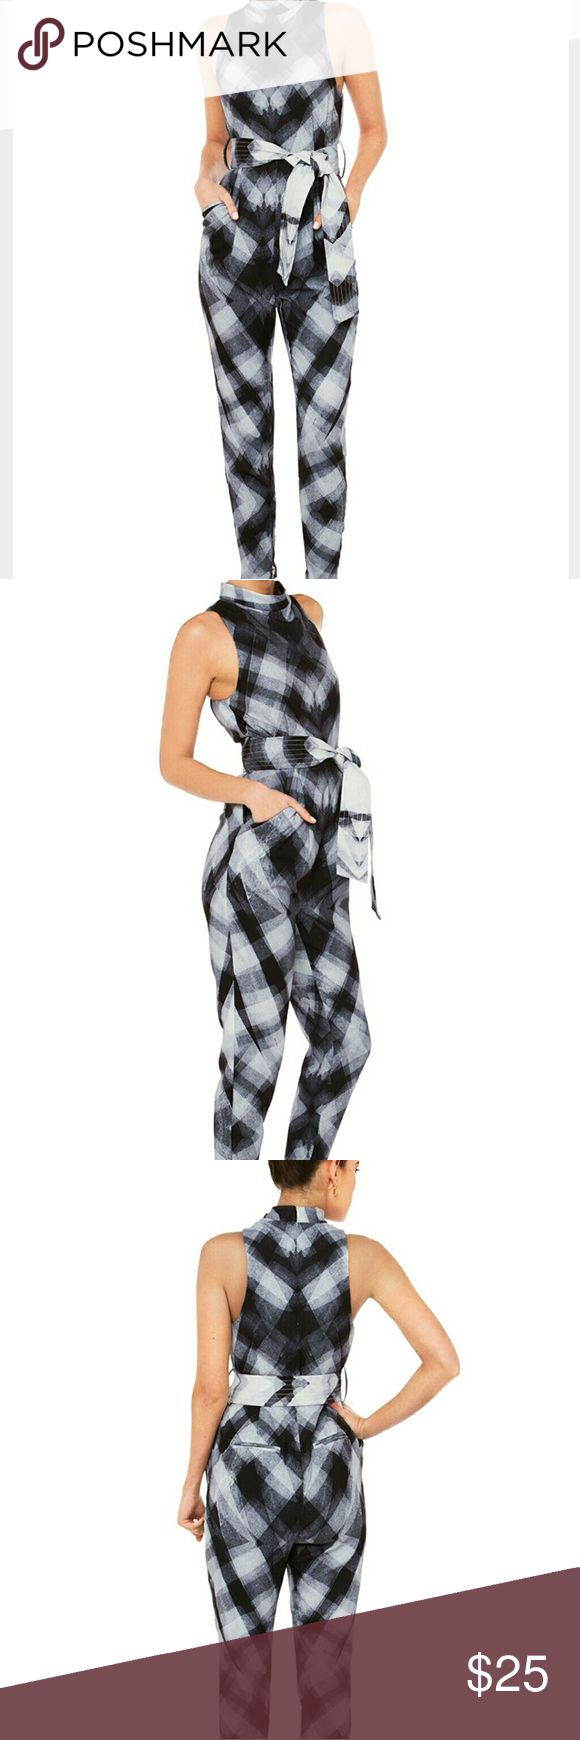 New! Cameo one piece Chicago  pant suit New with tag never used  Exclusive X-ray print,  zippers on inner ankle  Zipper back, includes belt Please feel free to ask questions  Approx 17.5 inches from pit to pit  26.5 inch inseam, 16 inch waist laying flat 2 front pockets cameo Pants Jumpsuits & Rompers